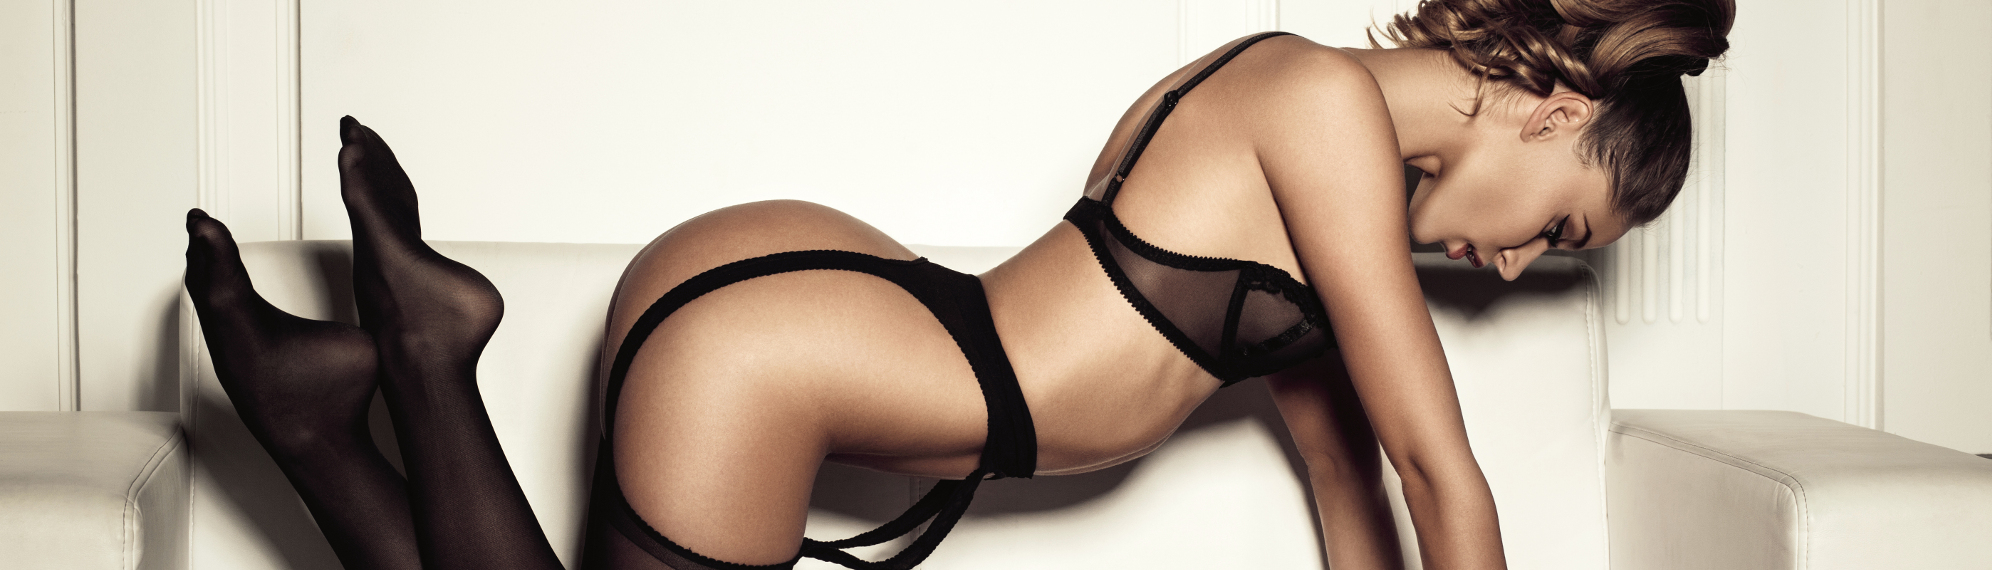 Find Gold Coast Escorts Right Here